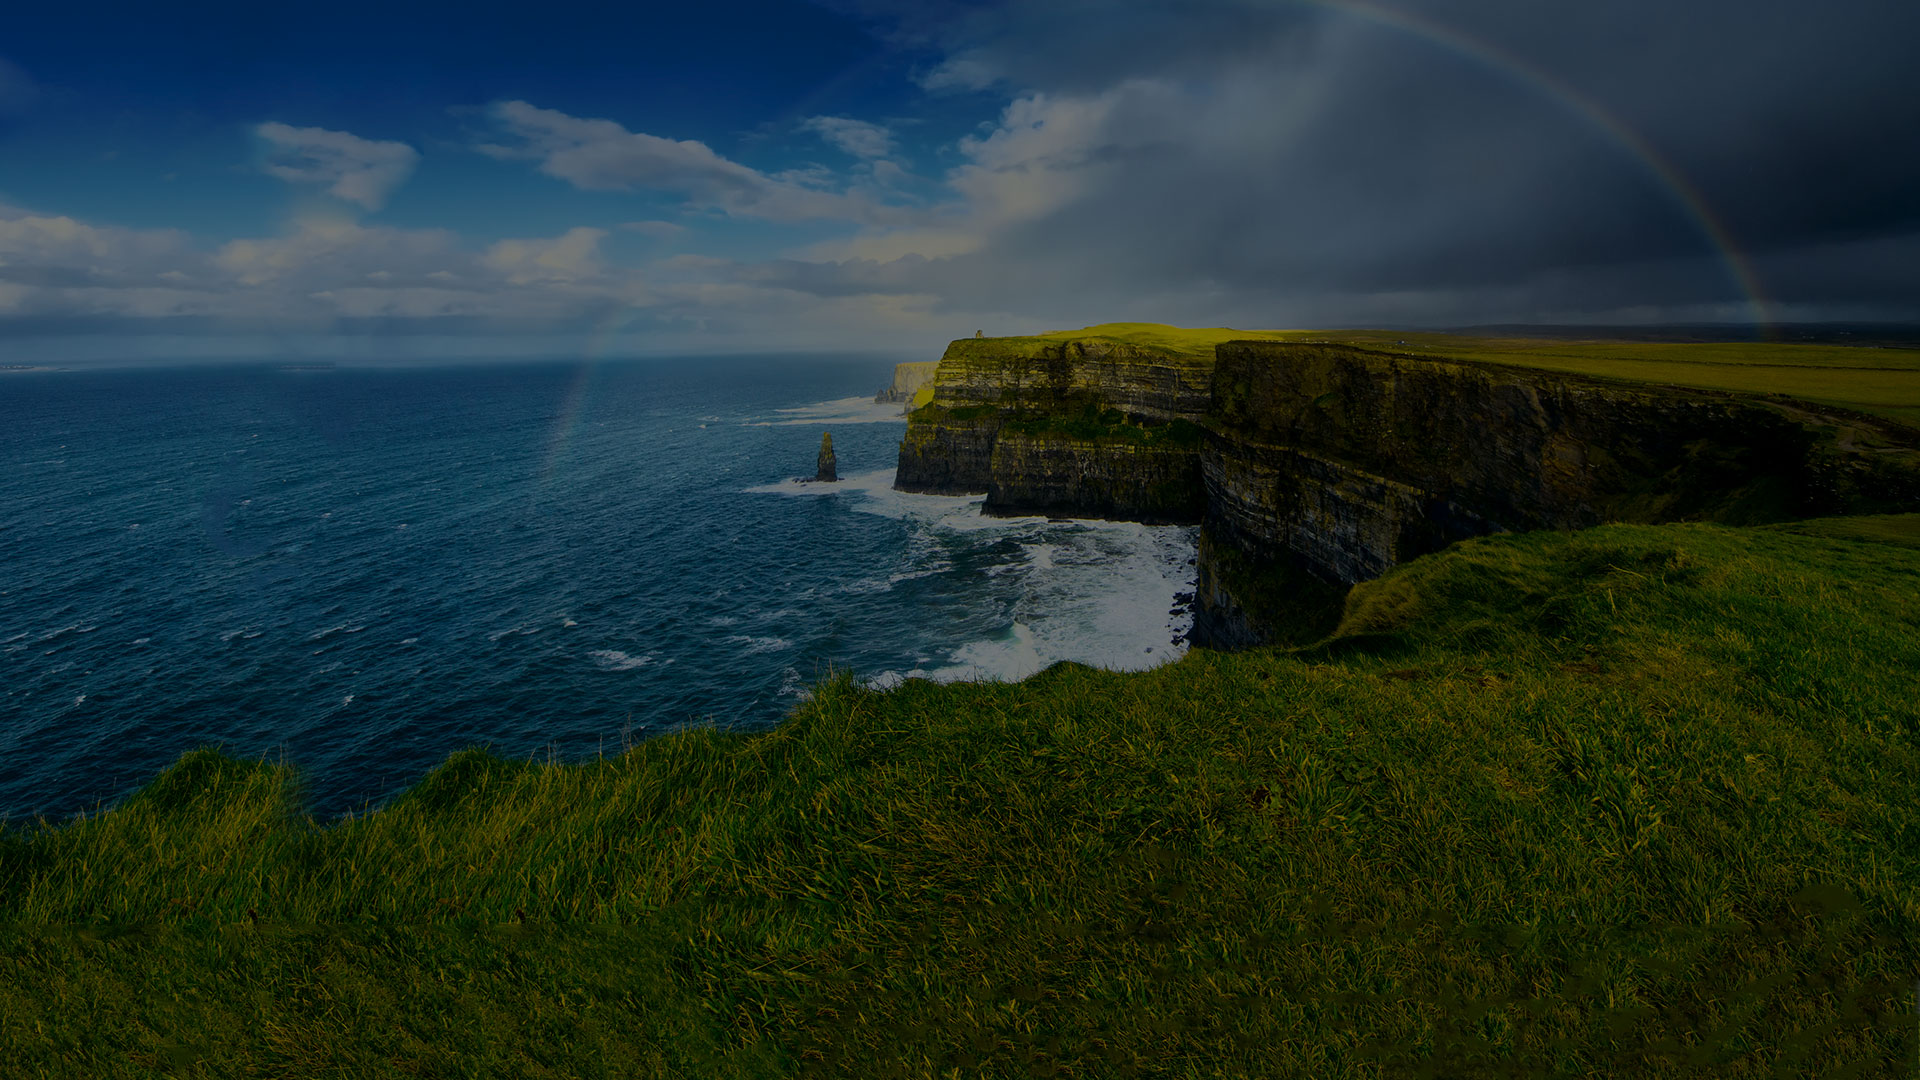 Insure your trip to Ireland